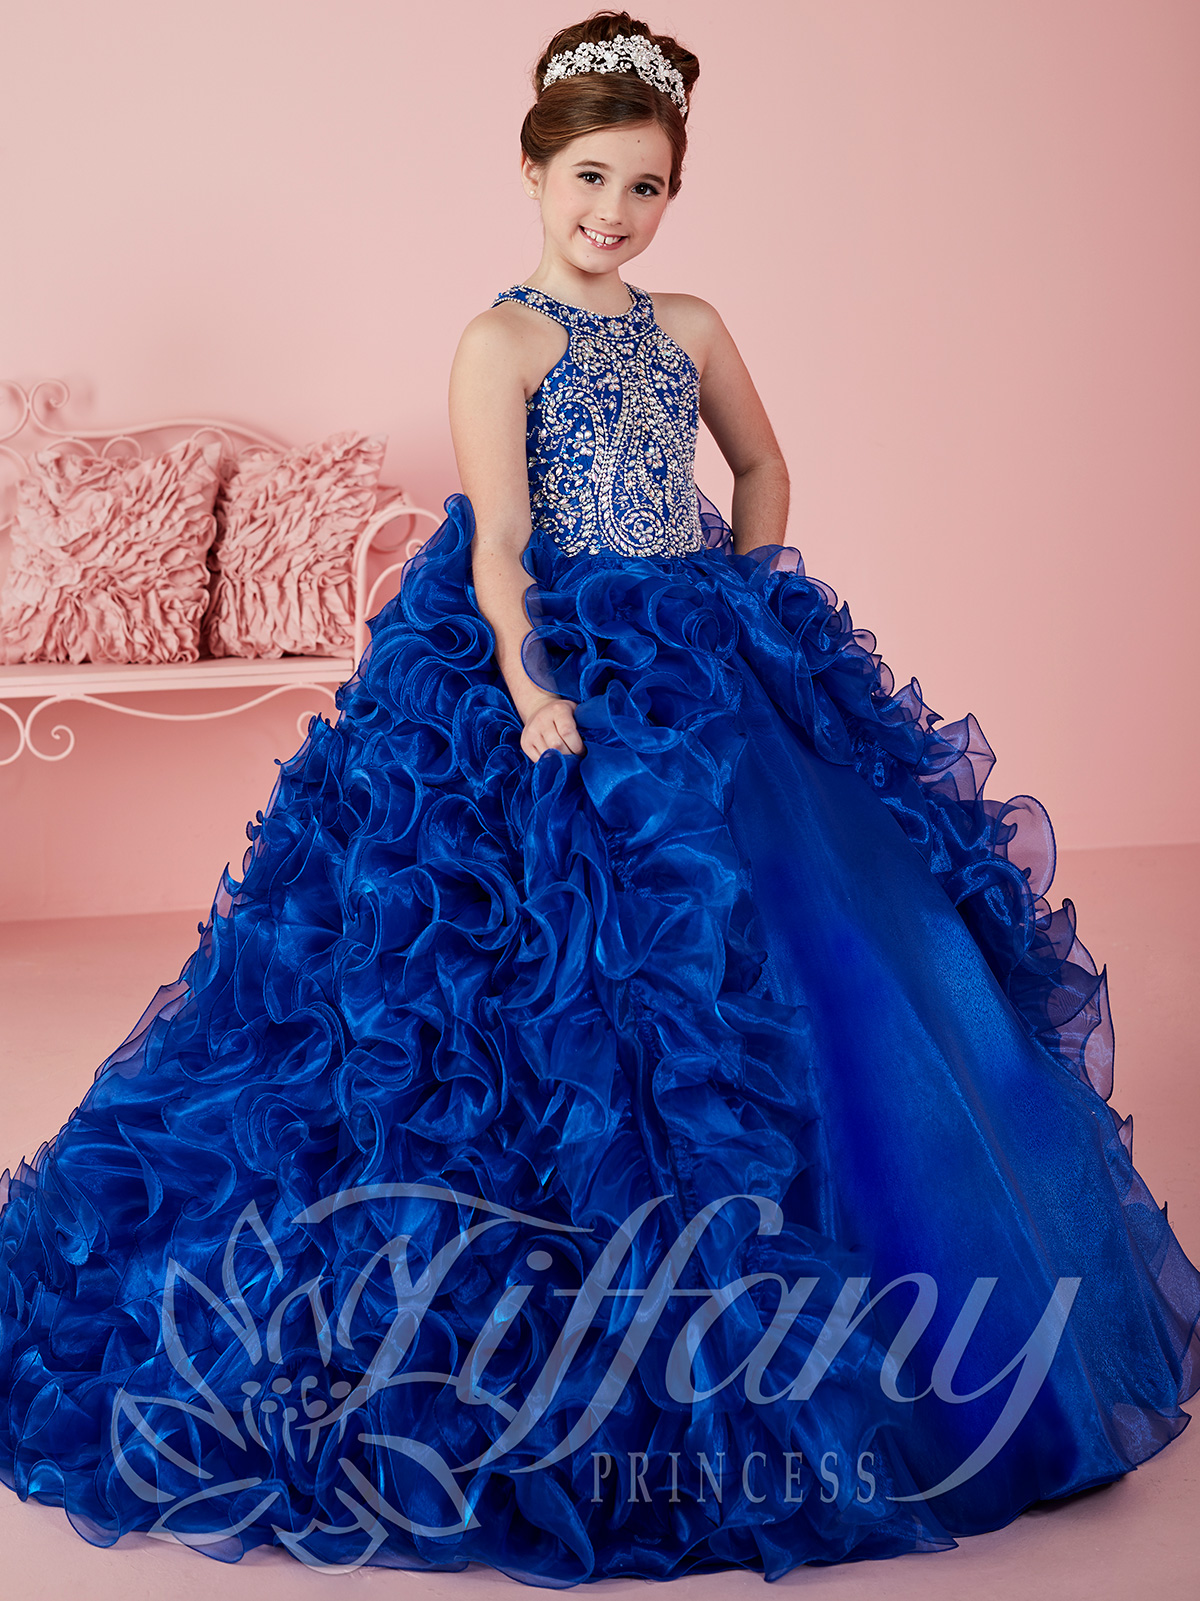 Tiffany Princess 13463 Halter Beaded Ball Gown Pageant ...